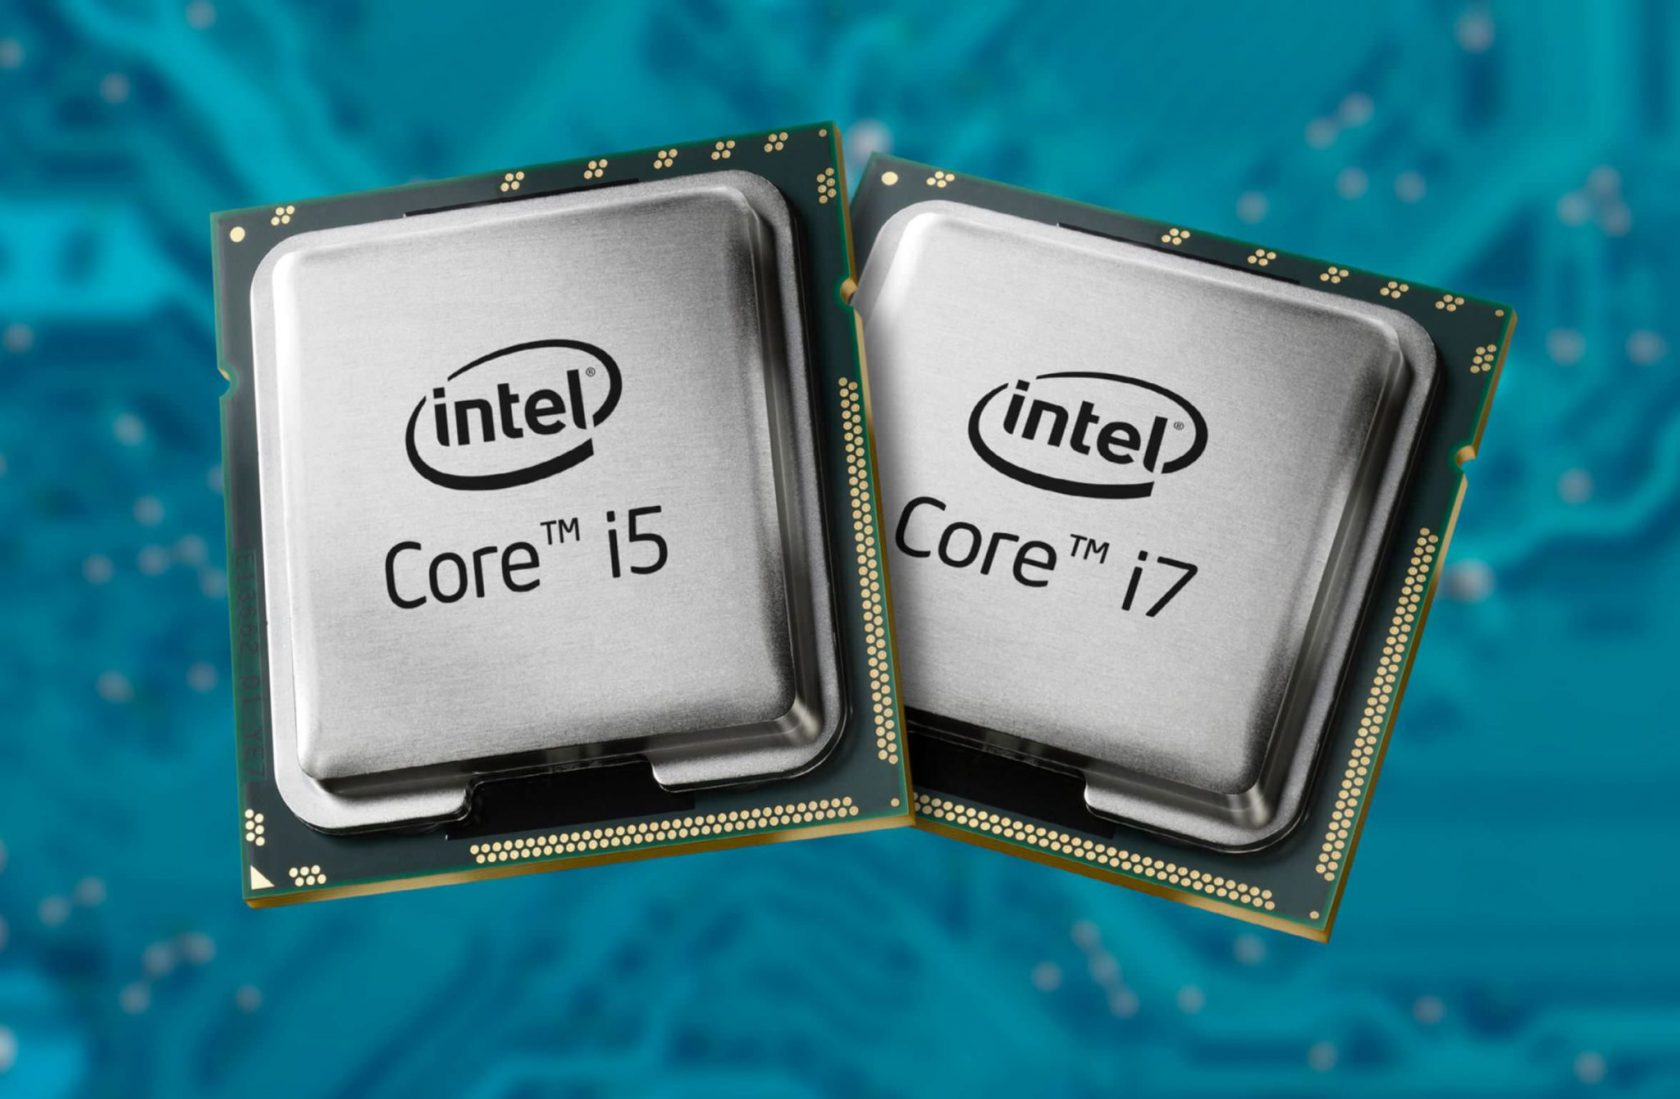 difference between i5 and i7, Difference Between i5 and i7 Processors and Generations